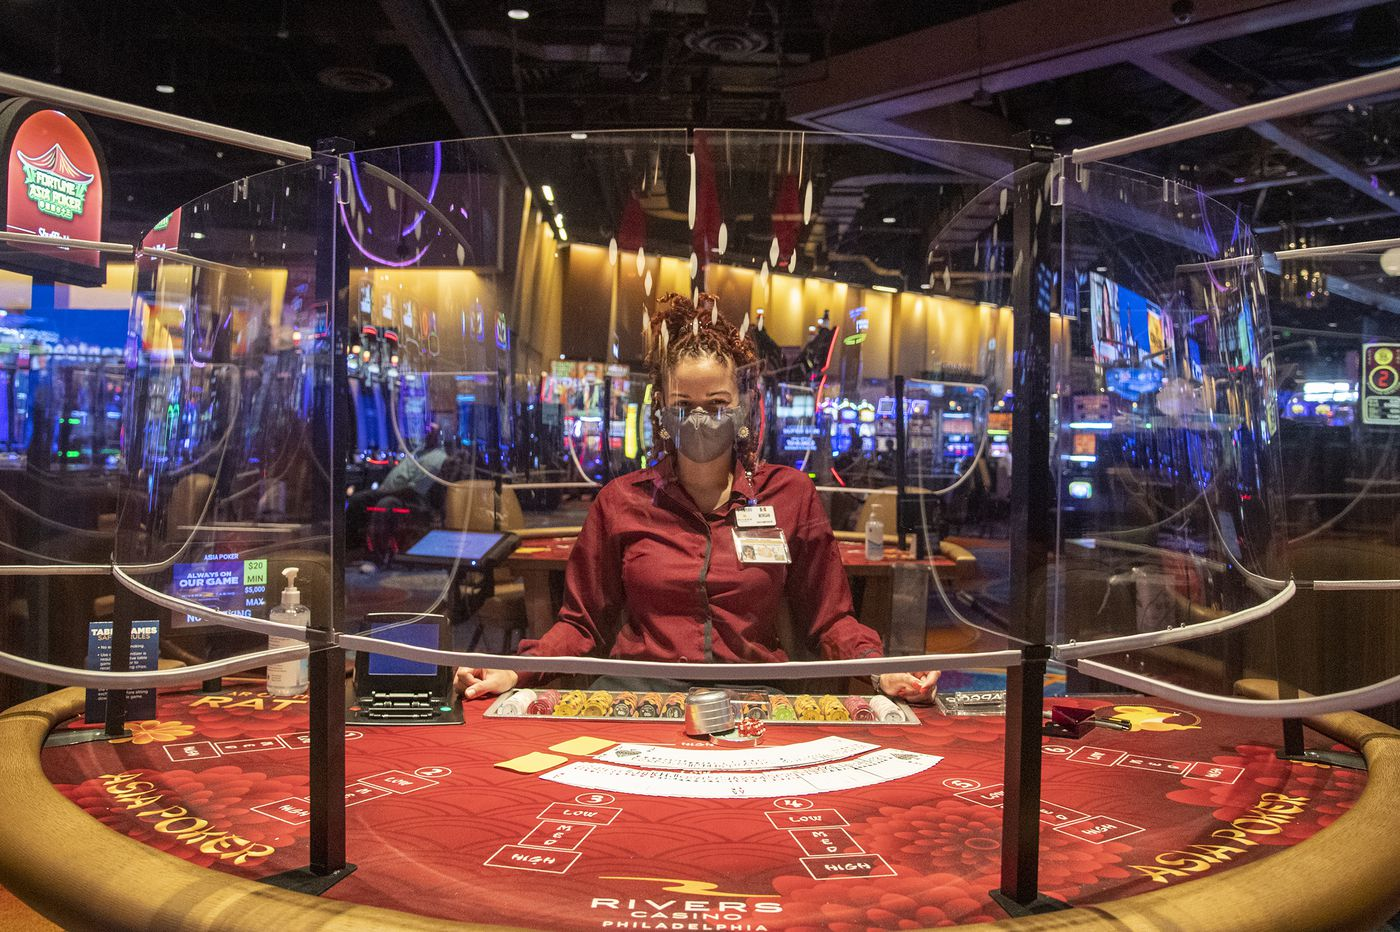 Pa. casino revenues return to pre-pandemic levels, but online gambling soars